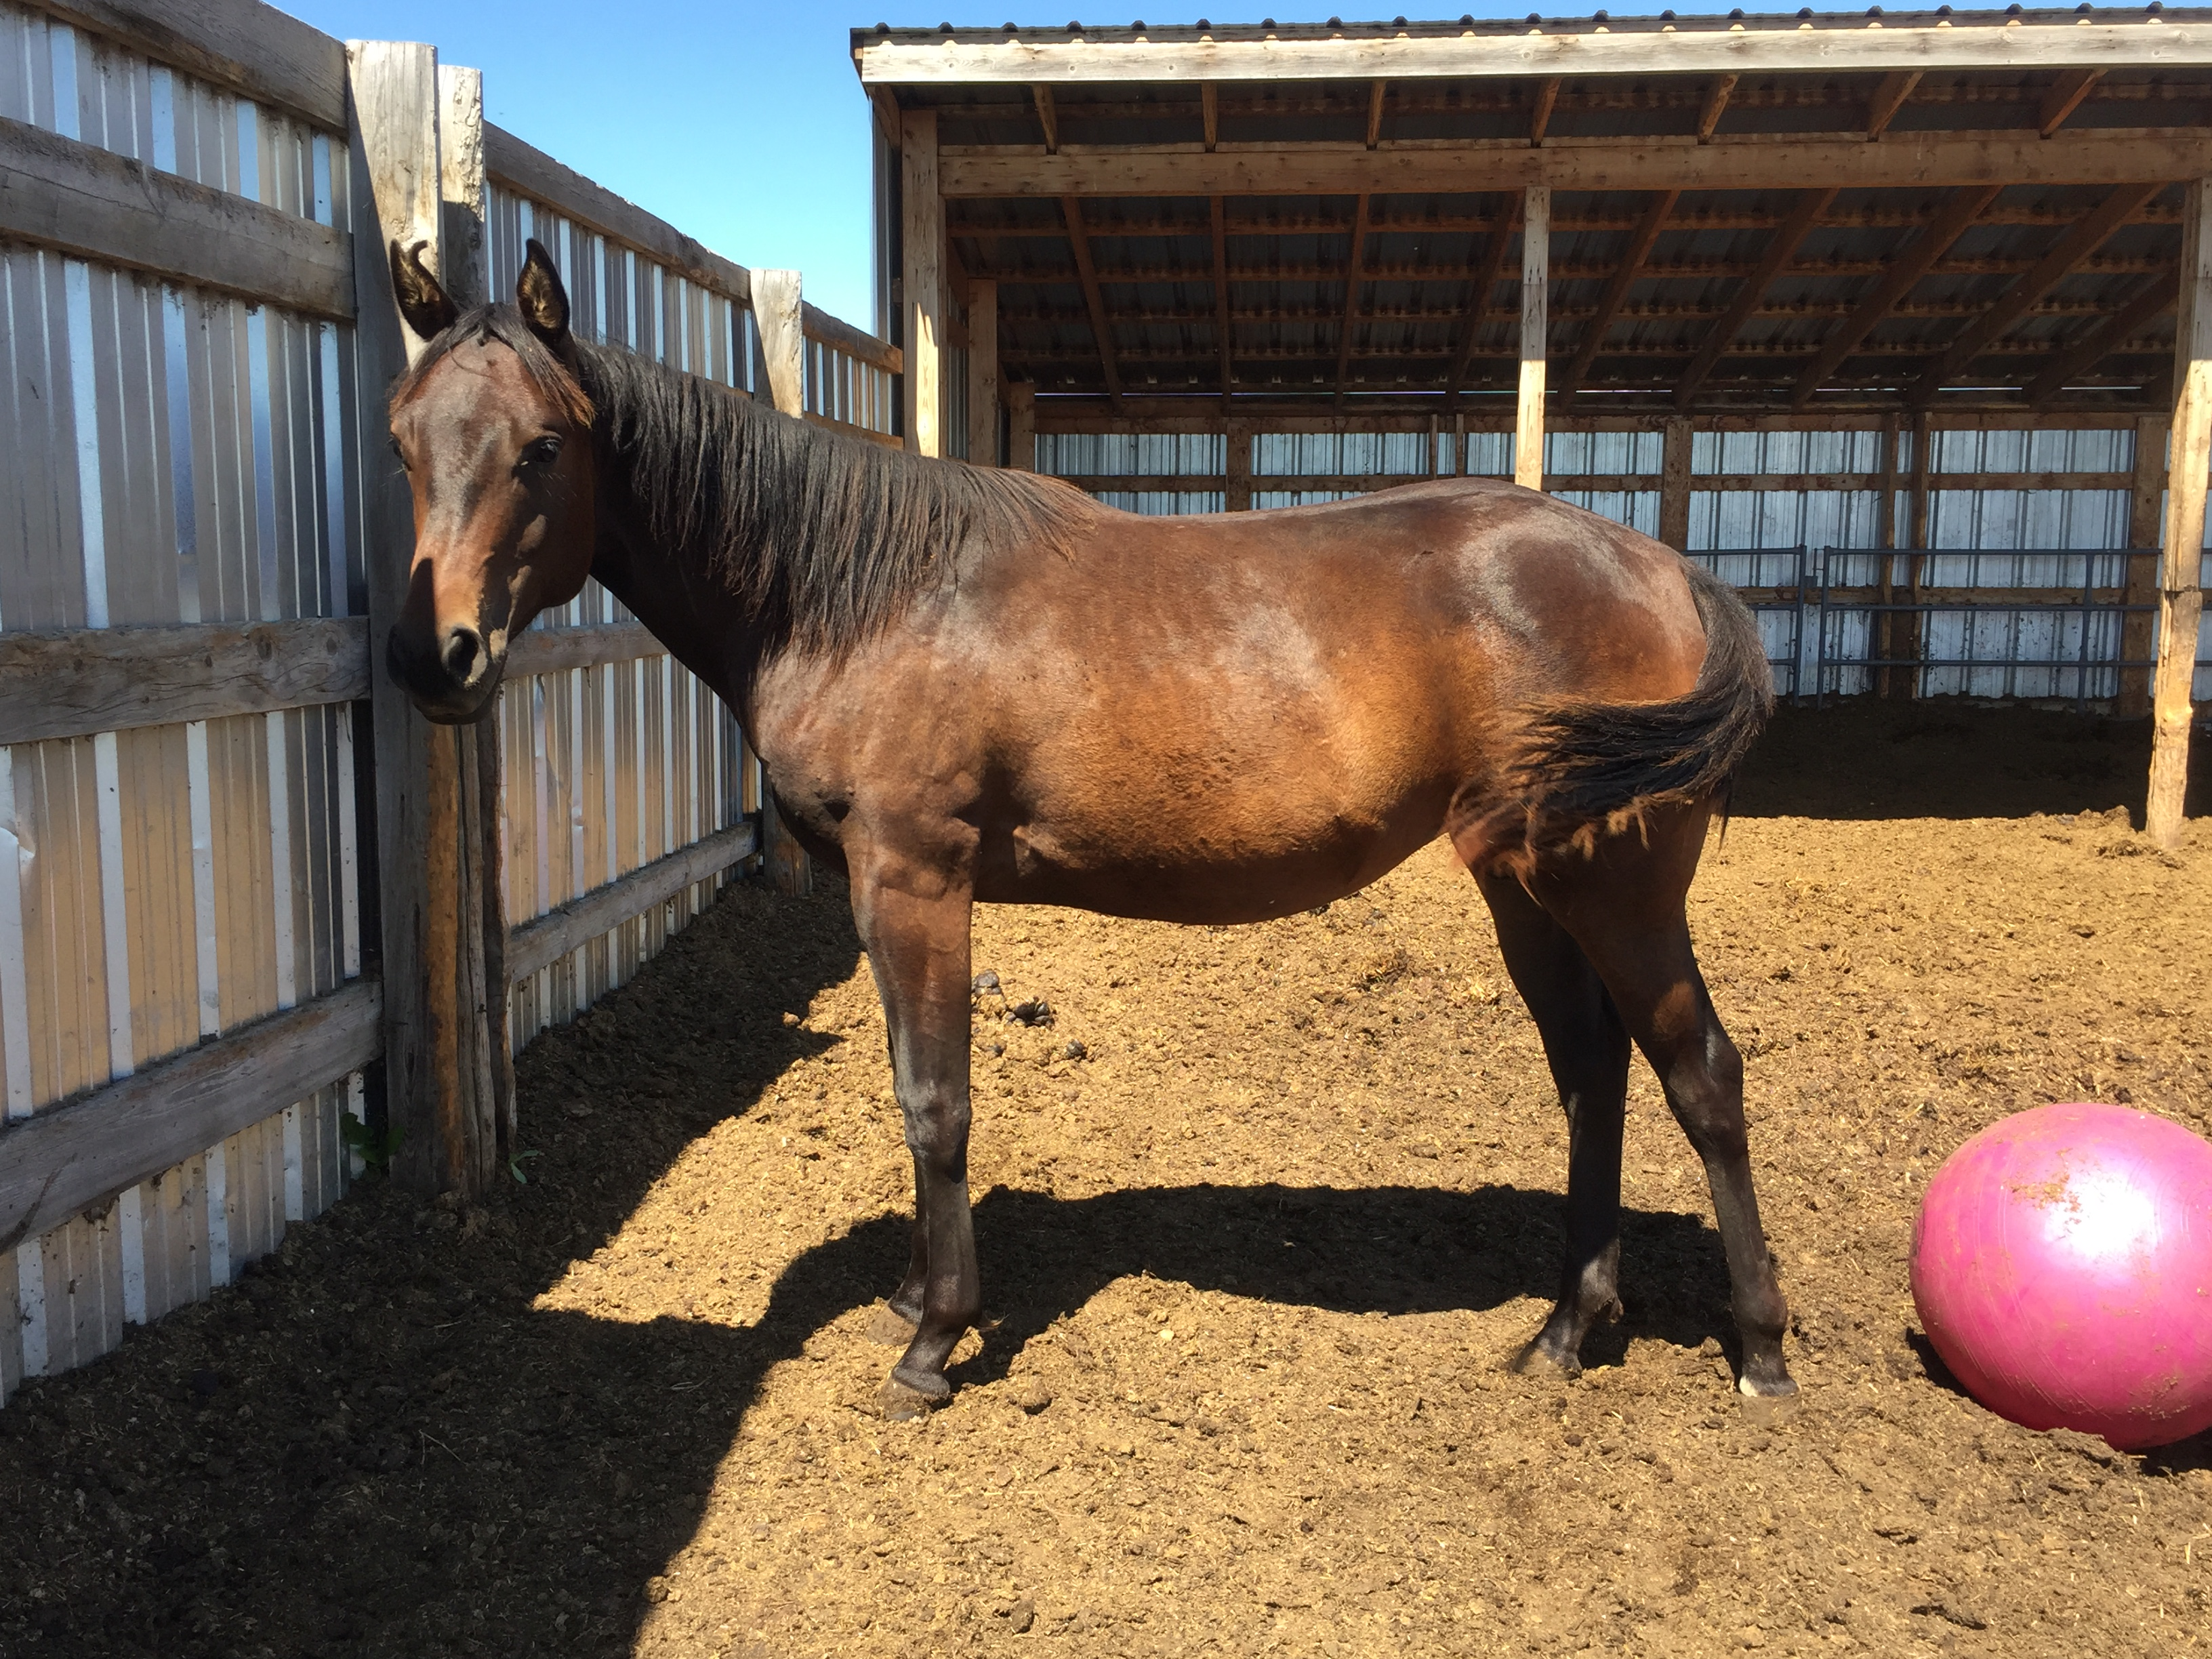 Petra 2019 quarter horse filly